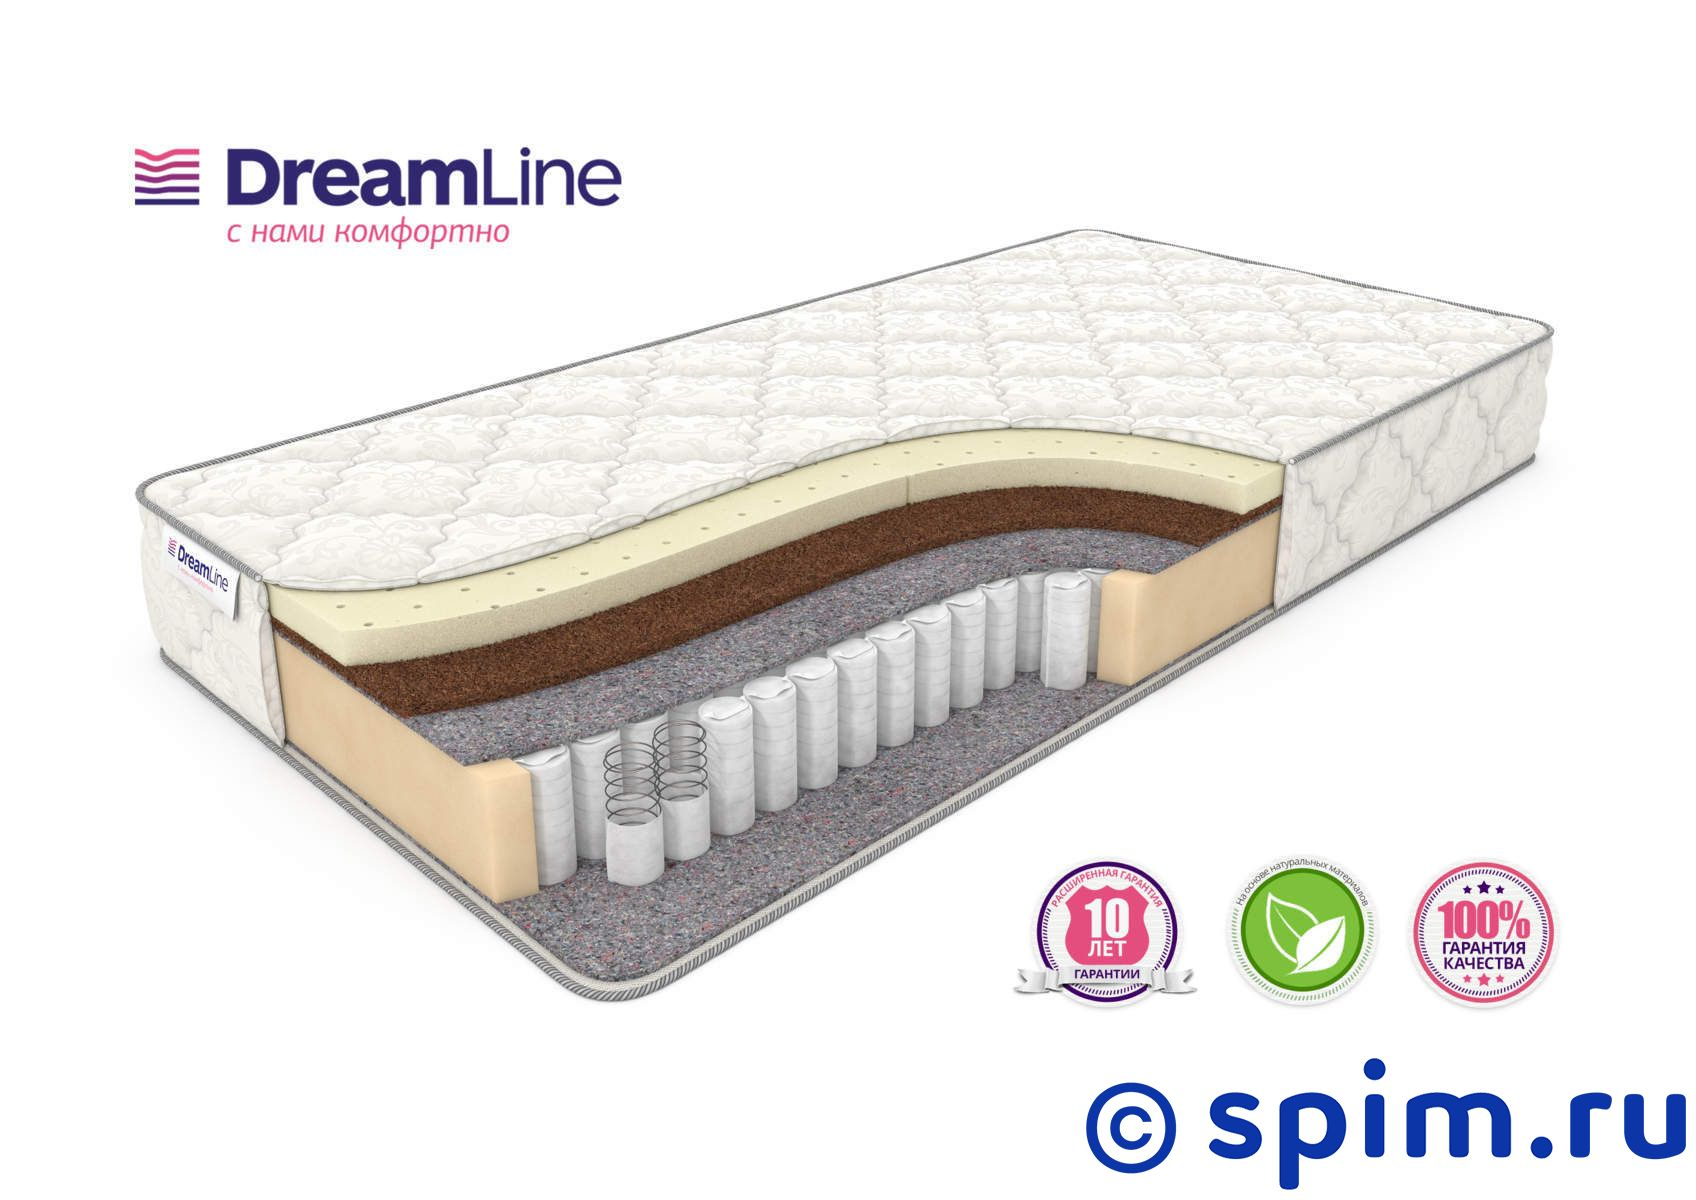 Матрас DreamLine Single SleepDream Medium Tfk 150х195 см матрас dreamline sleepdream medium tfk 140х200 см